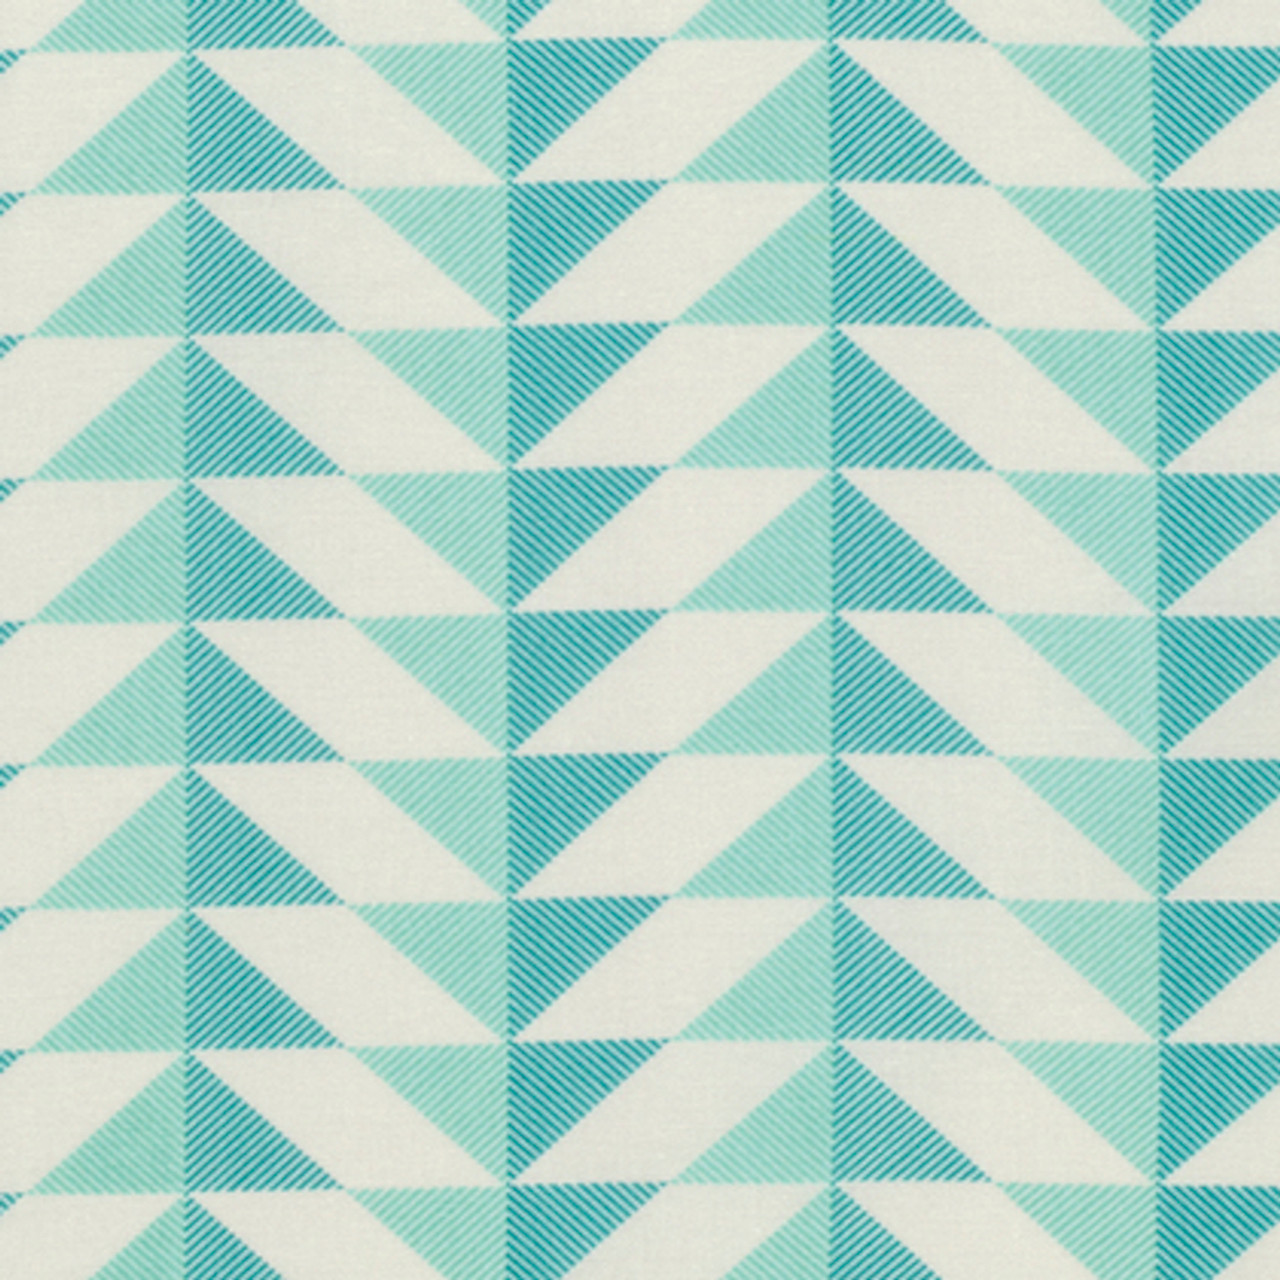 Joel Dewberry PWJD142 Modernist Arrowhead Aegean Cotton Quilting Fabric By Yard